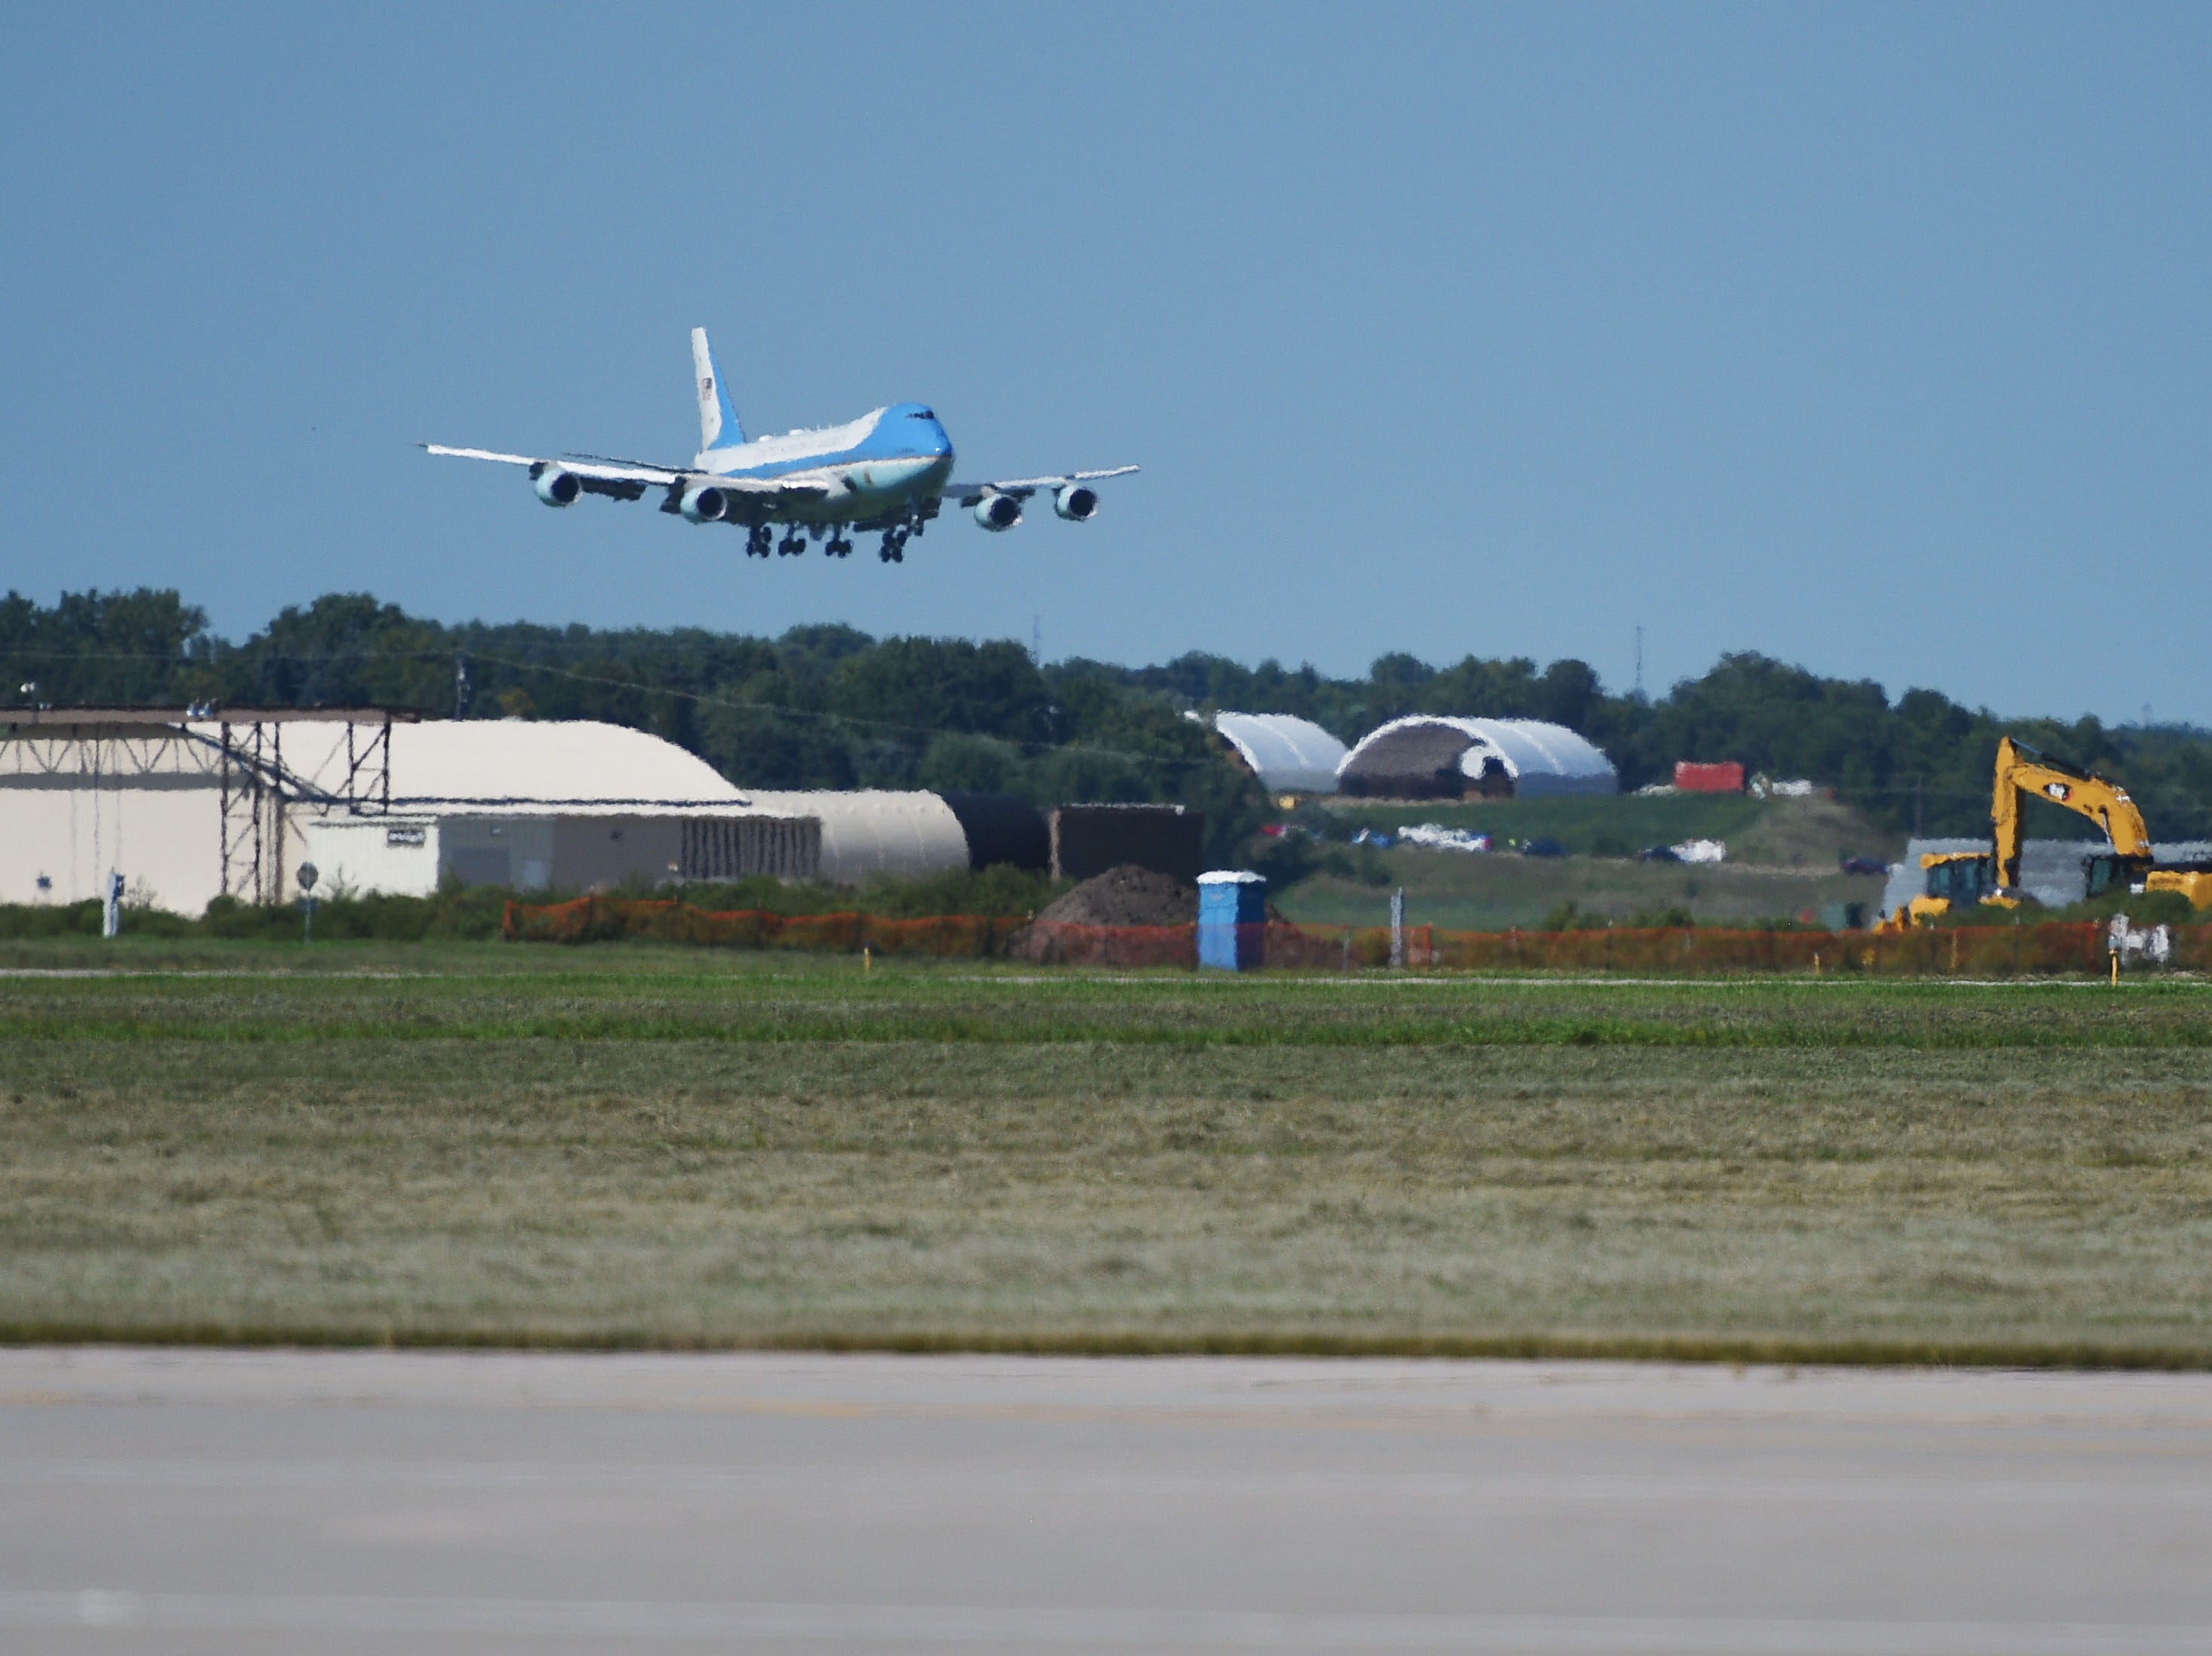 Air Force One lands in Sioux Falls Friday, Sept. 7, at South Dakota Air National Guard in Sioux Falls.